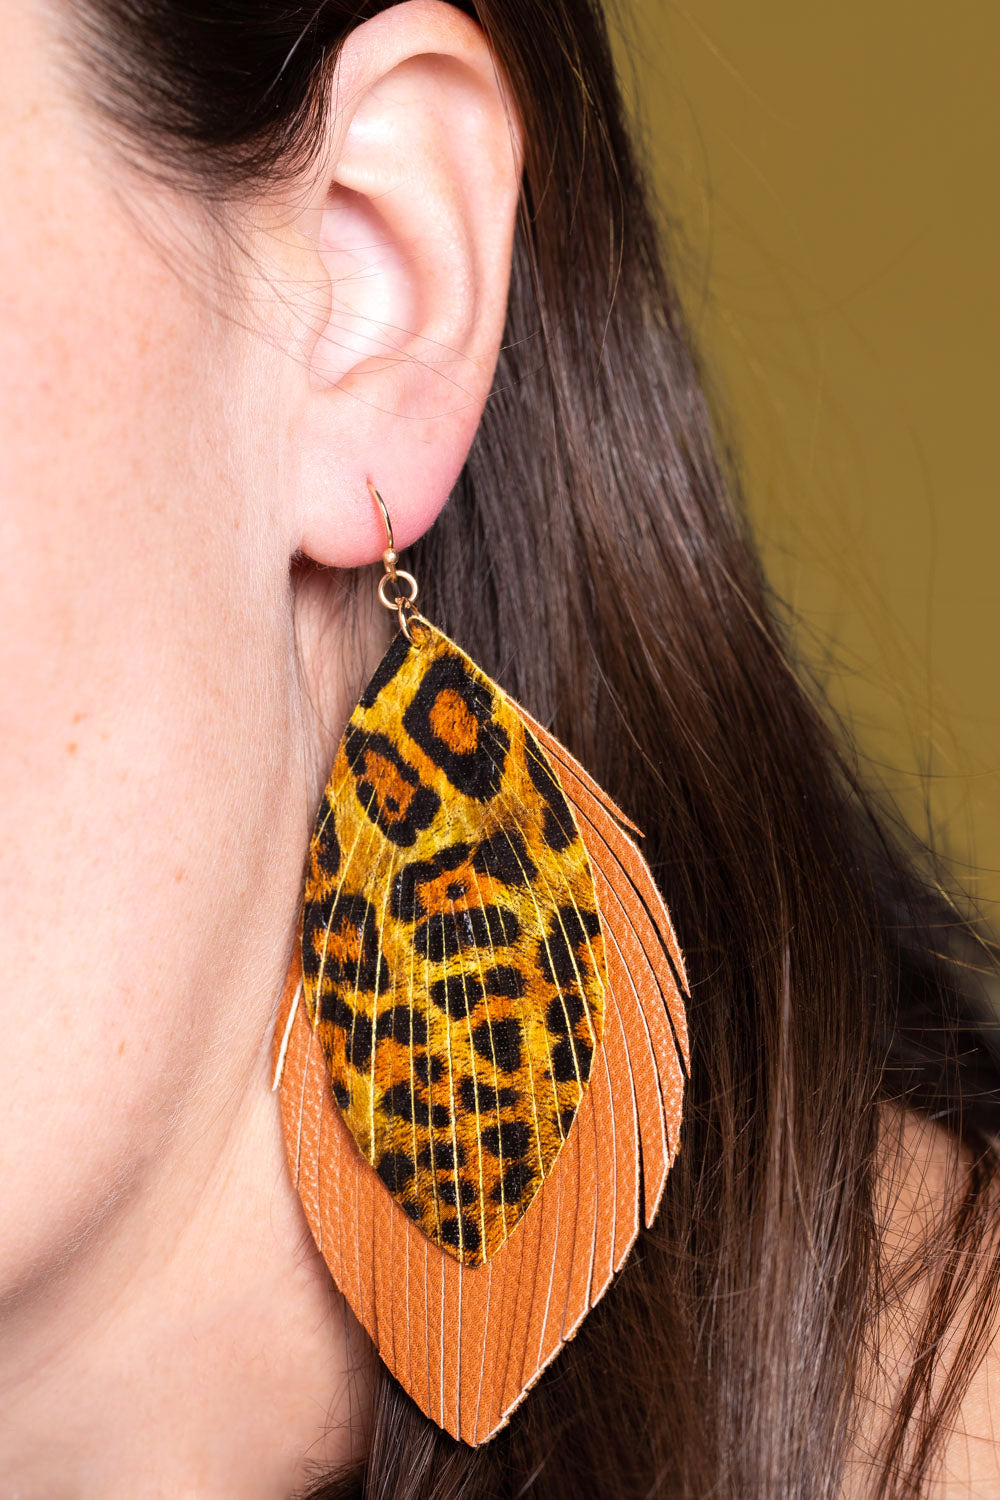 Type 3 Suburban Safari Earrings